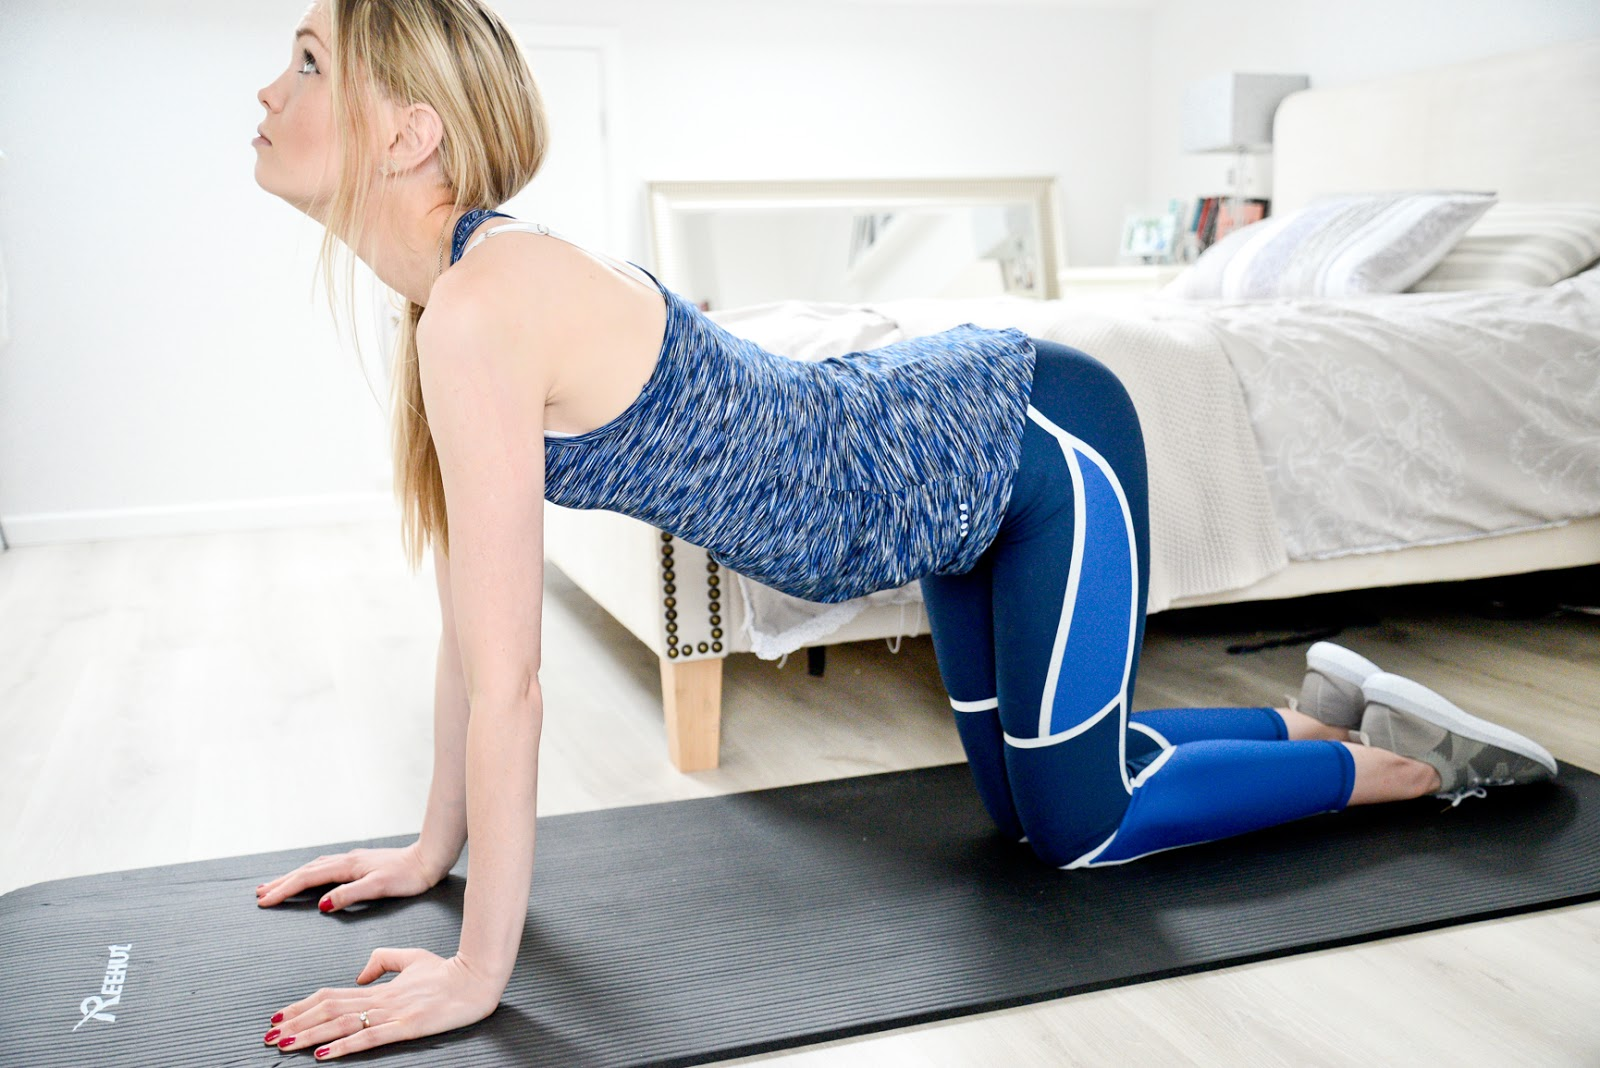 back pain, back pain relief, stretches for back pain, easy yoga, beginners yoga, scoliosis pain, upper back pain stretches